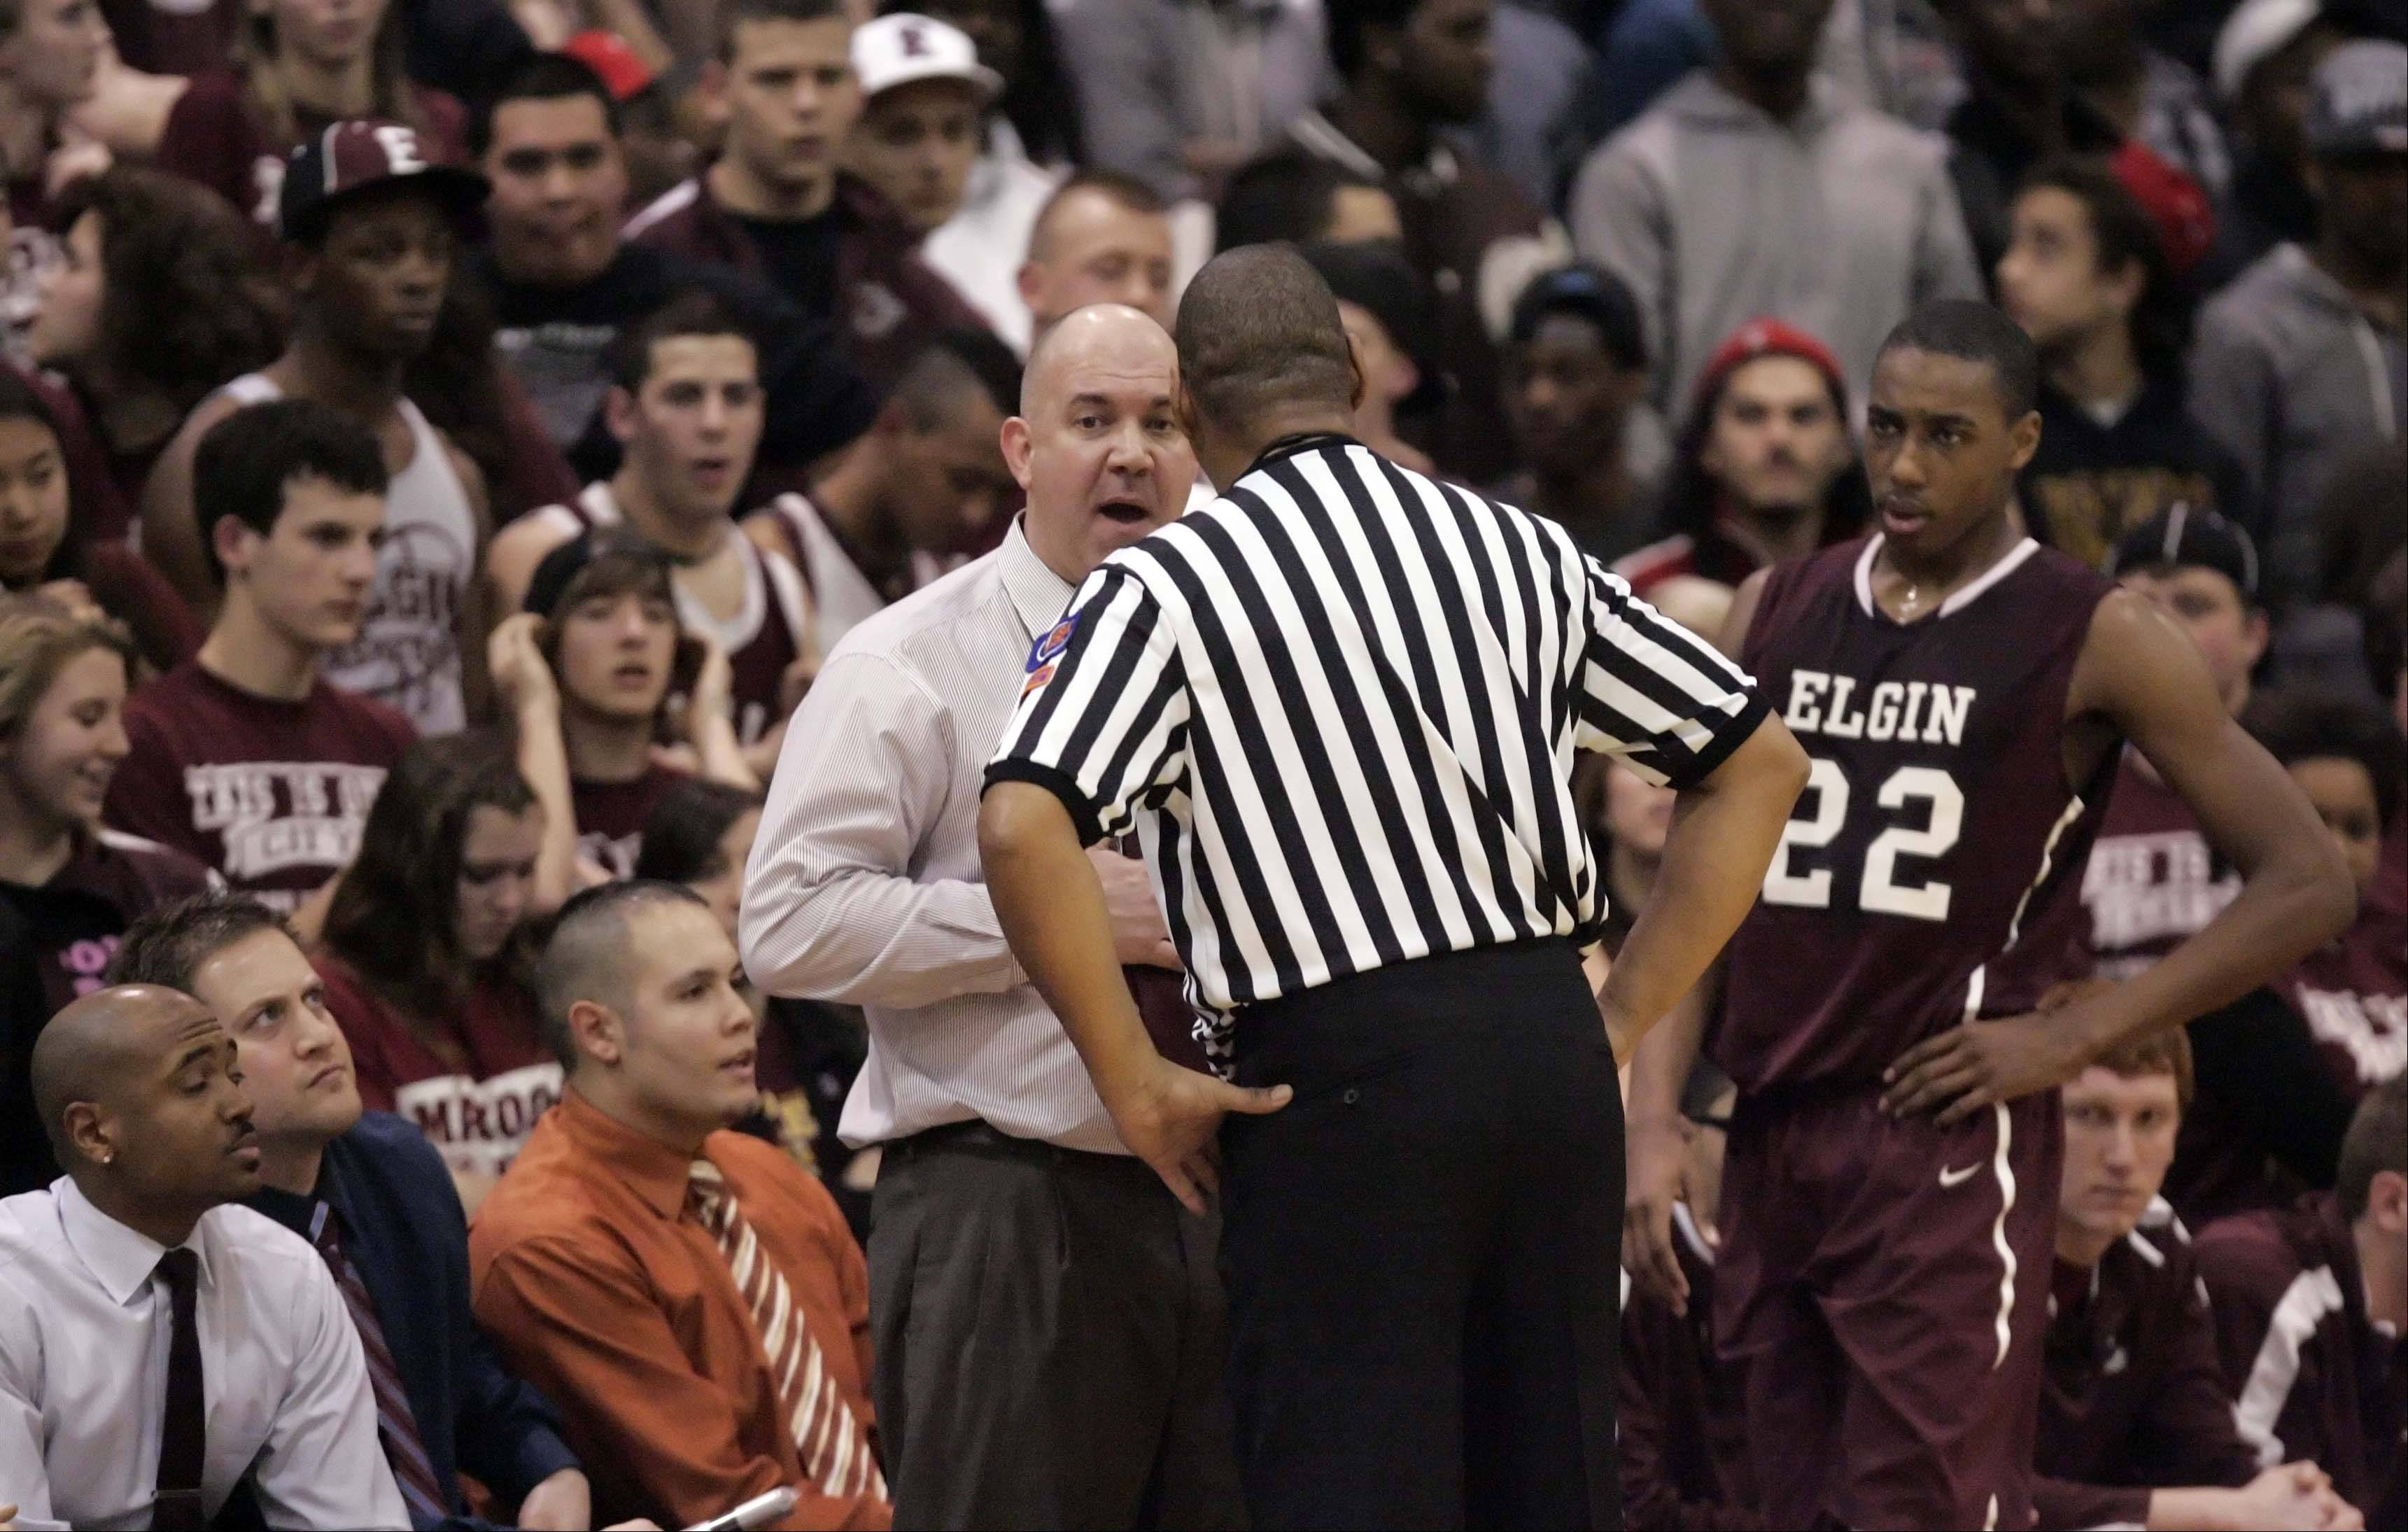 Elgin head coach Michael Sitter talks to the referee after Elgin wing Kory Brown received his third foul.